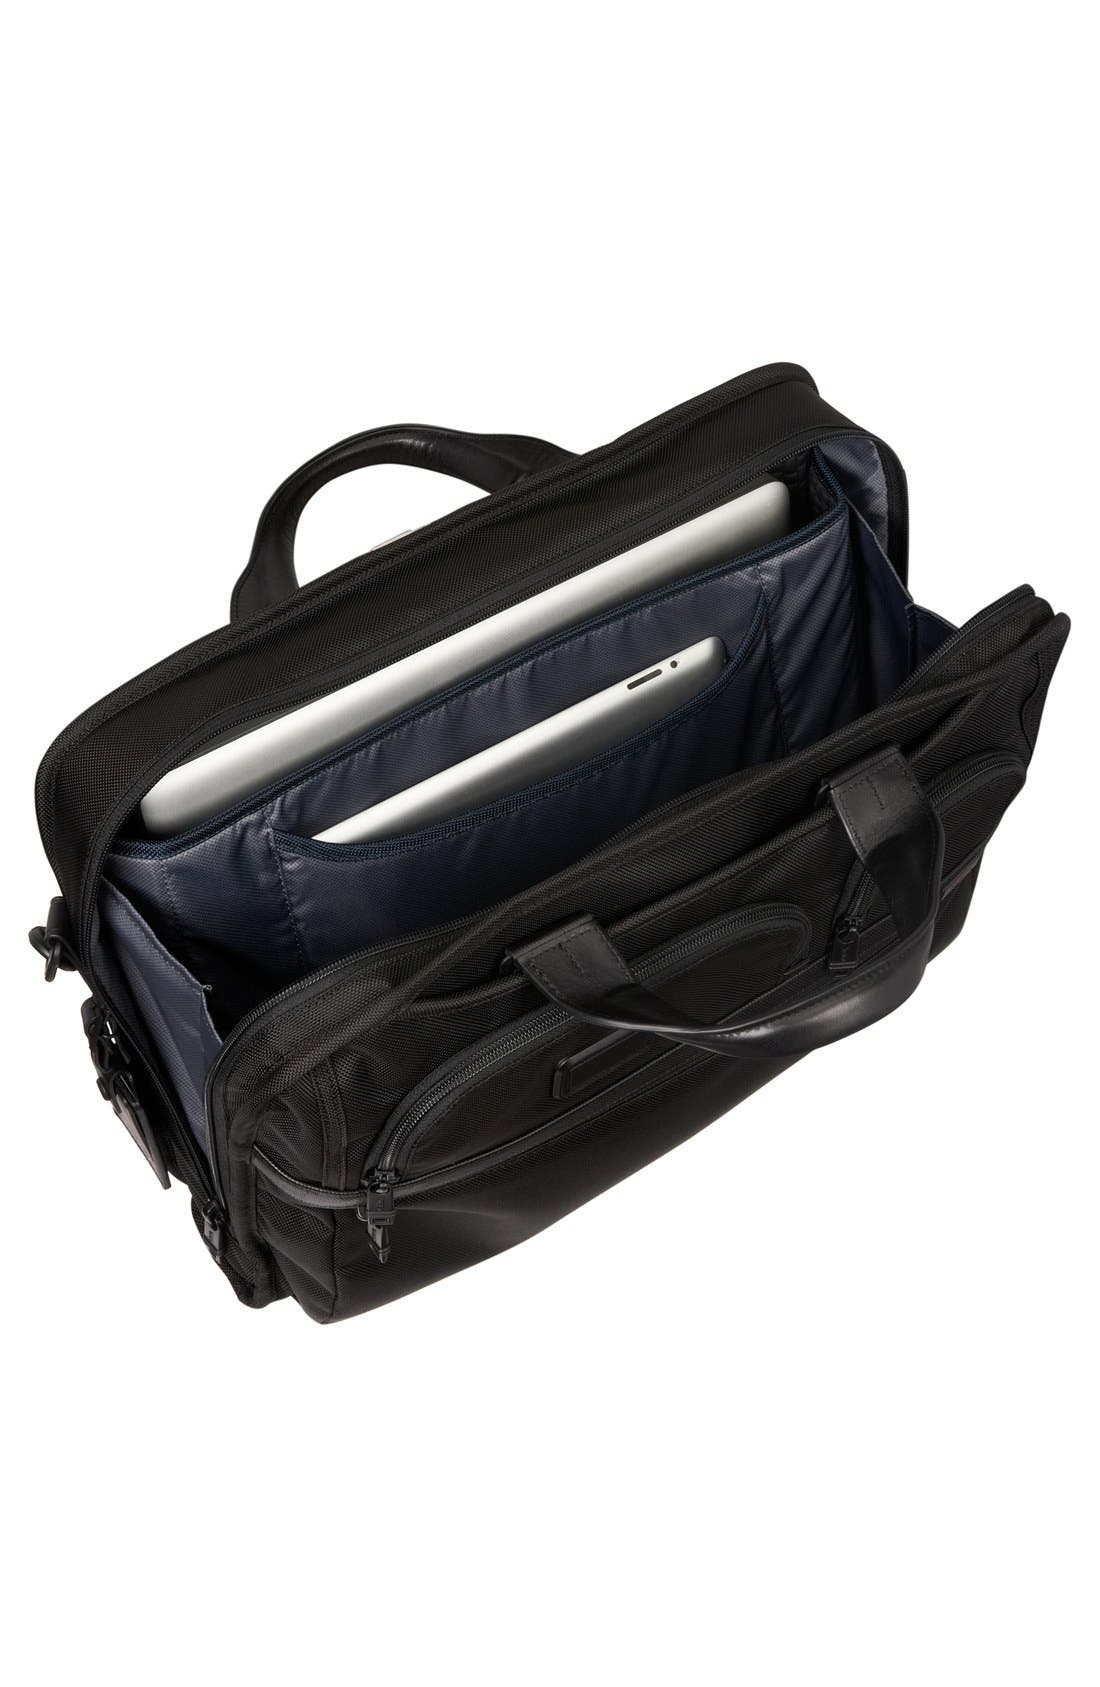 Alpha 2 Laptop Briefcase with Tumi ID Lock Pocket,                             Alternate thumbnail 2, color,                             BLACK